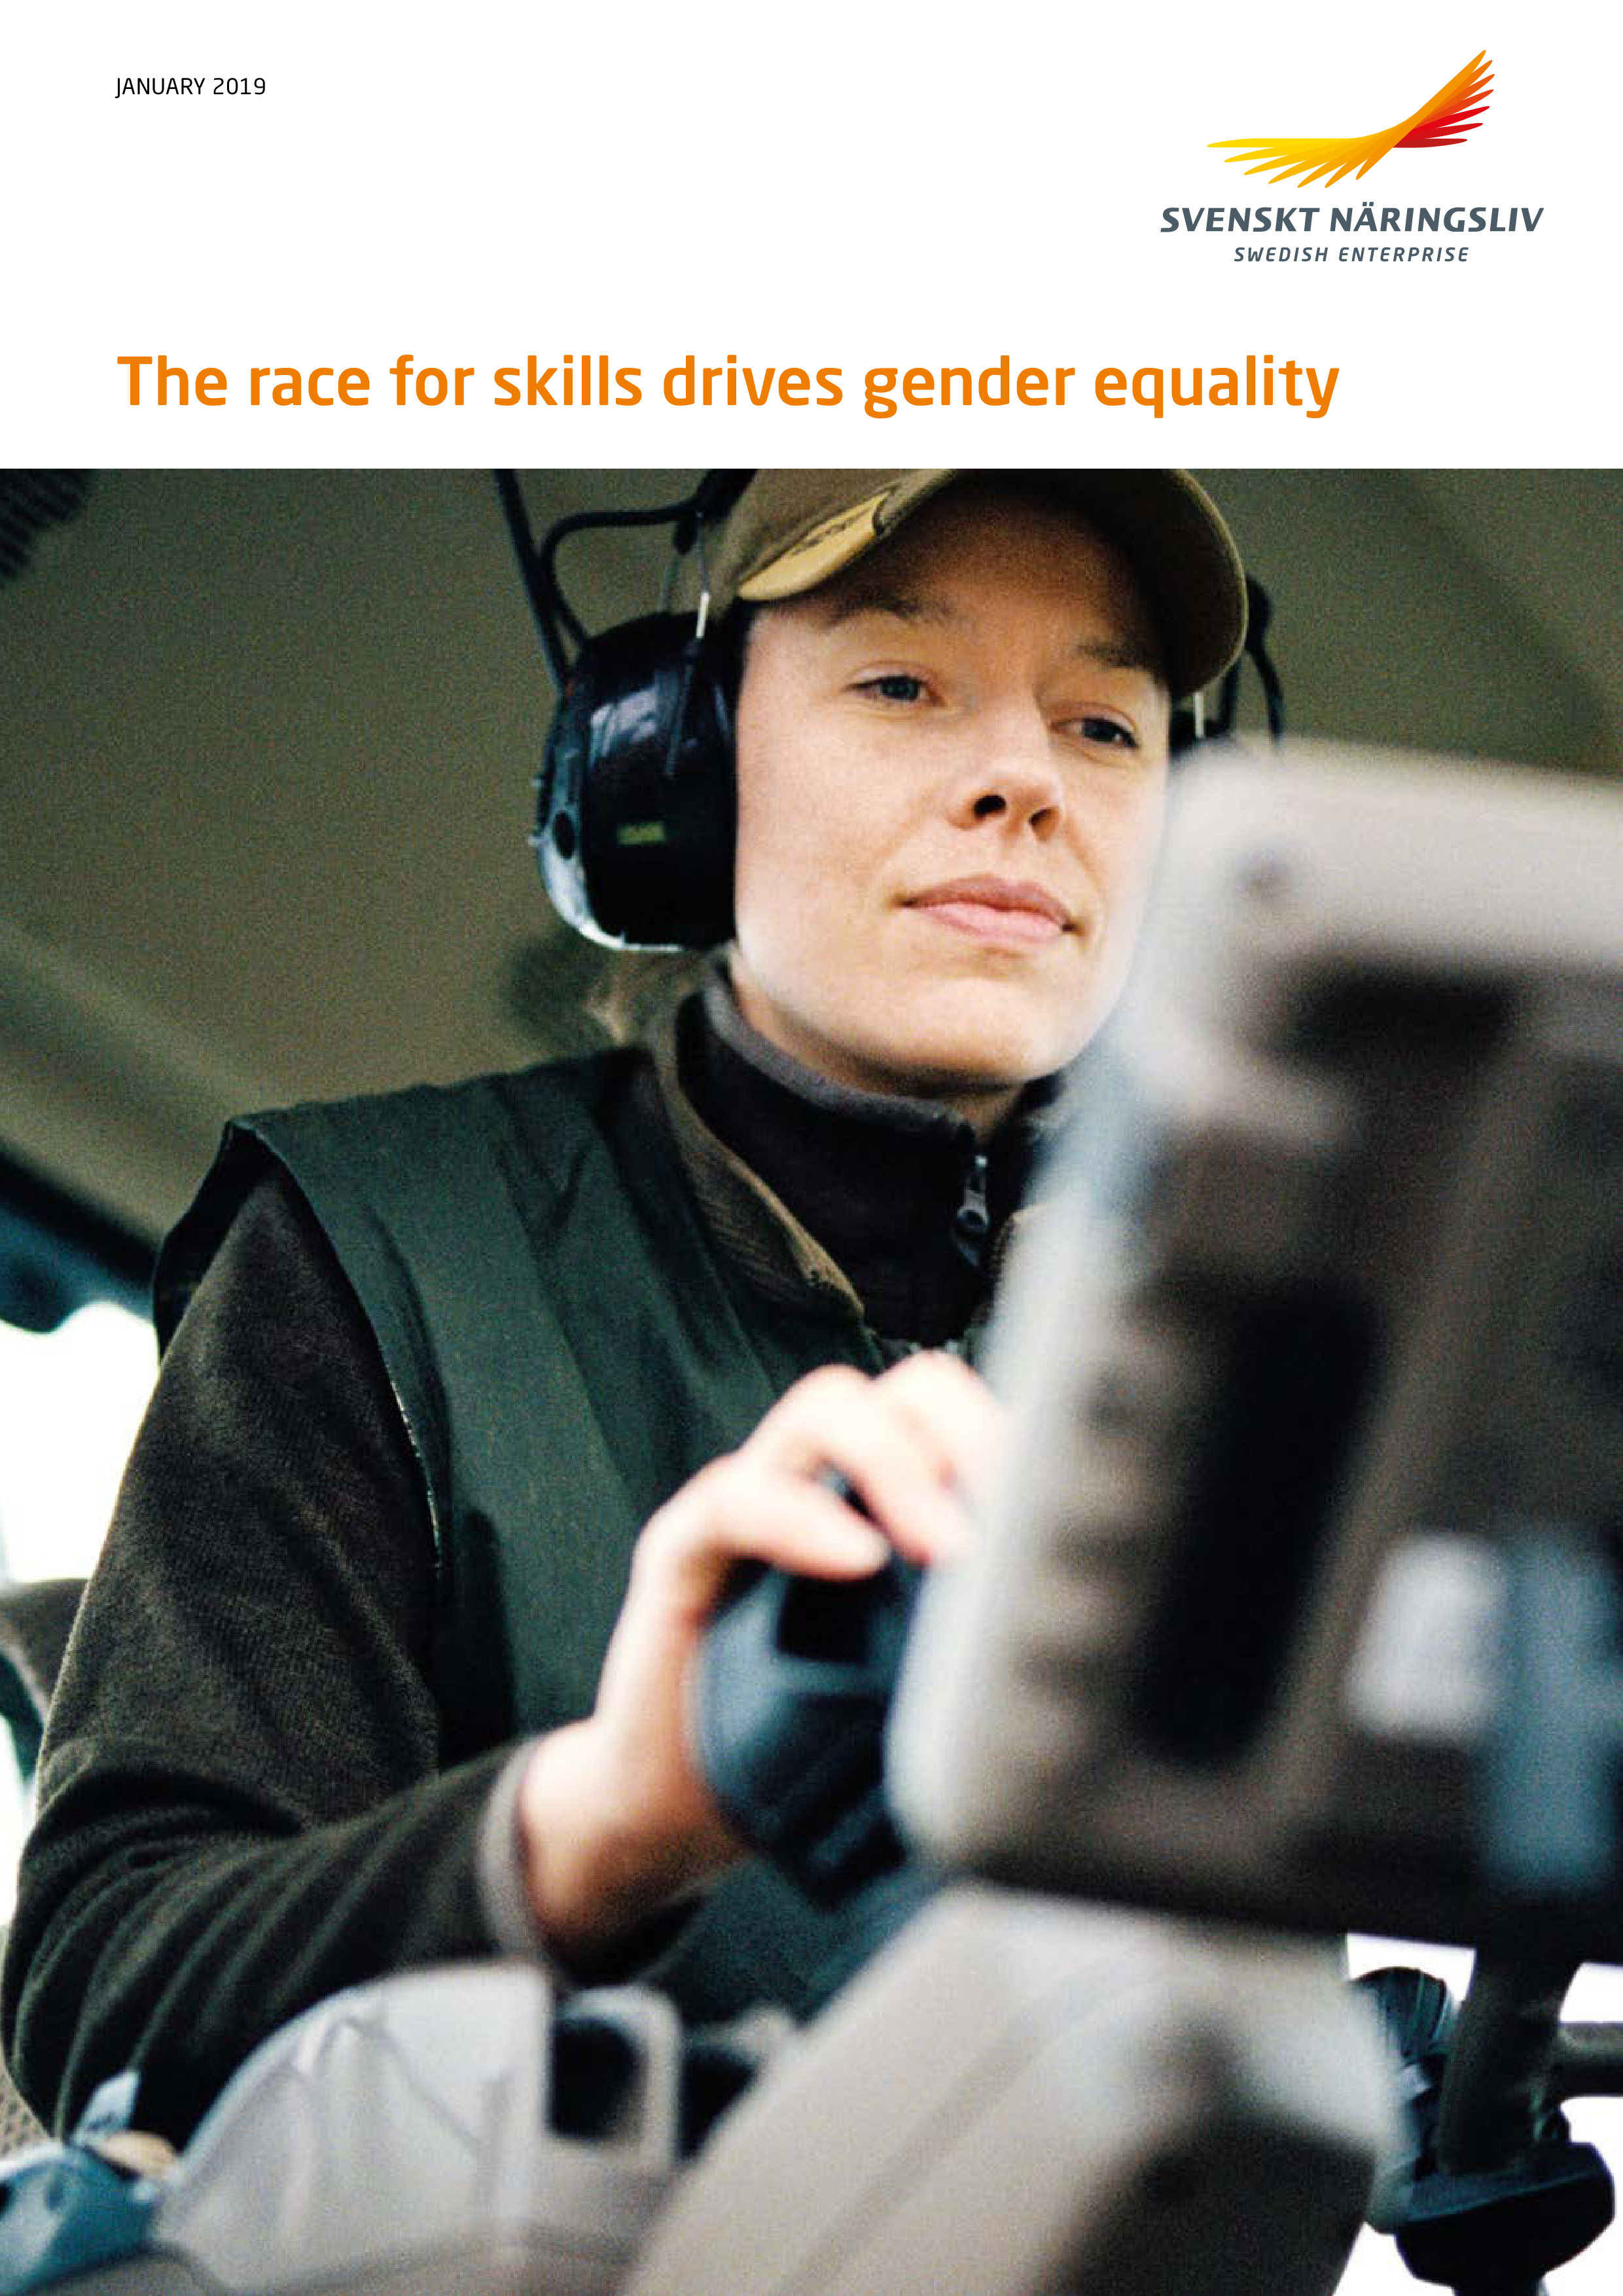 SN_The_race_for_skills_drives_gender_equality_webb.pdf